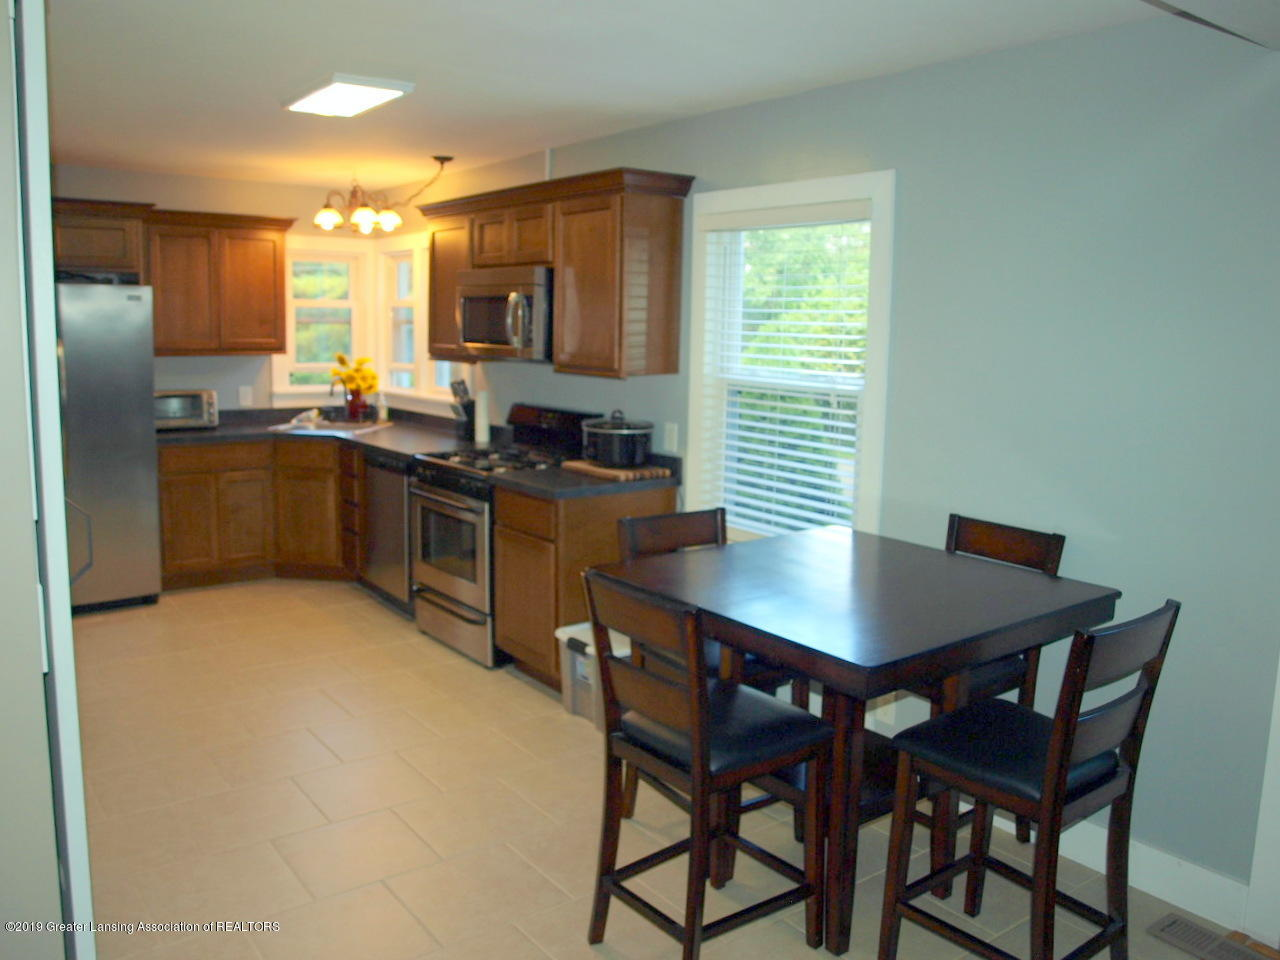 6070 E Clark Rd - kitchen - 14